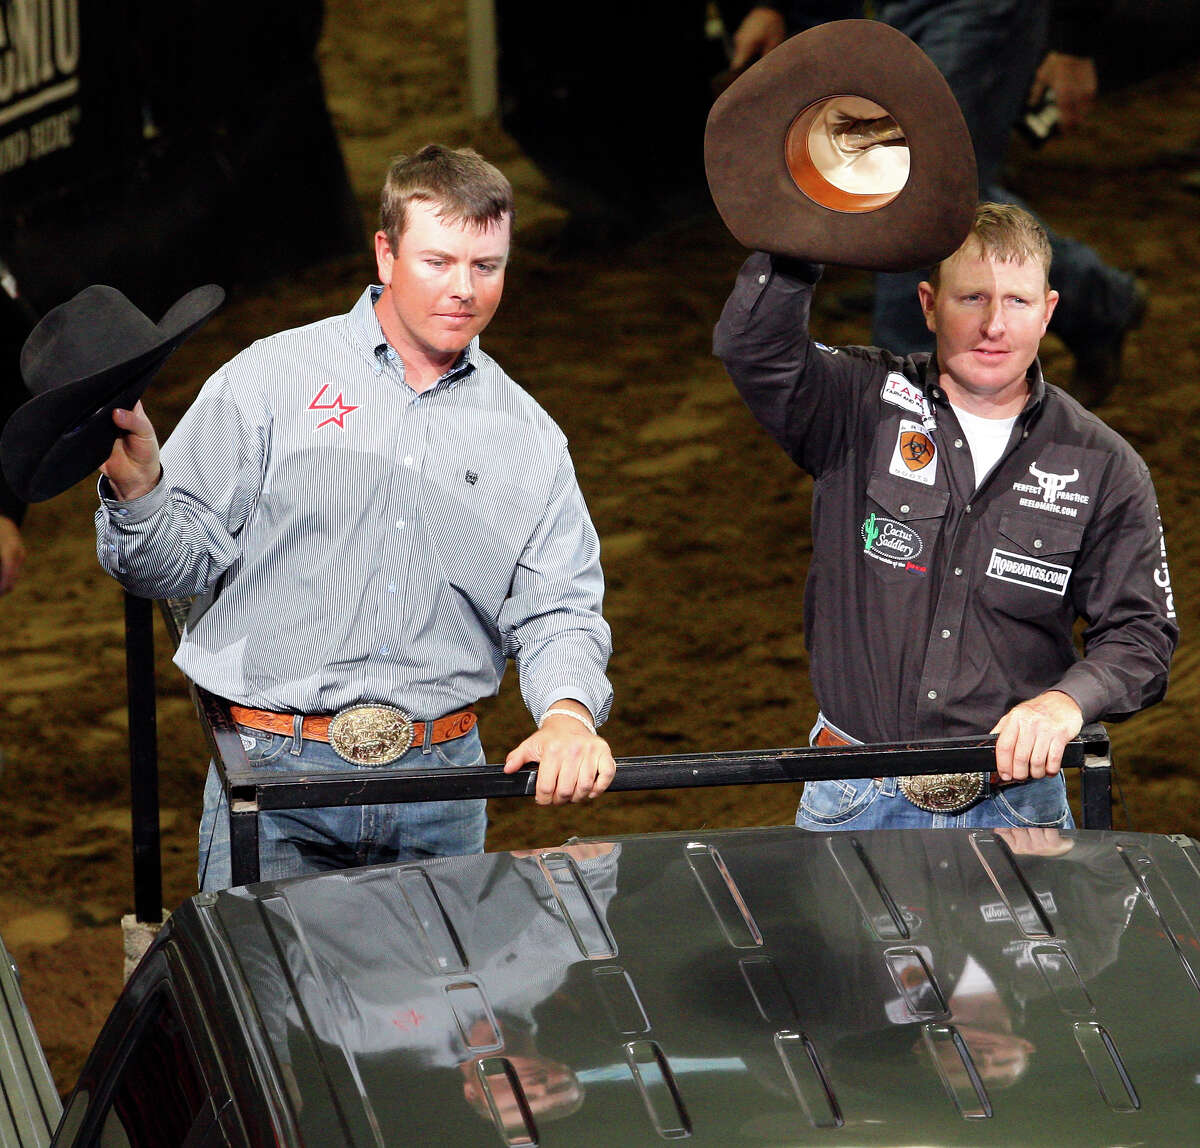 Jade Corkill, from Fallon, NV, (left) and Chad Masters, from Clarksville, TN, celebrate their win in the Team Roping event Saturday Feb. 19, 2011 during the San Antonio Stock Show & Rodeo at the AT&T Center.